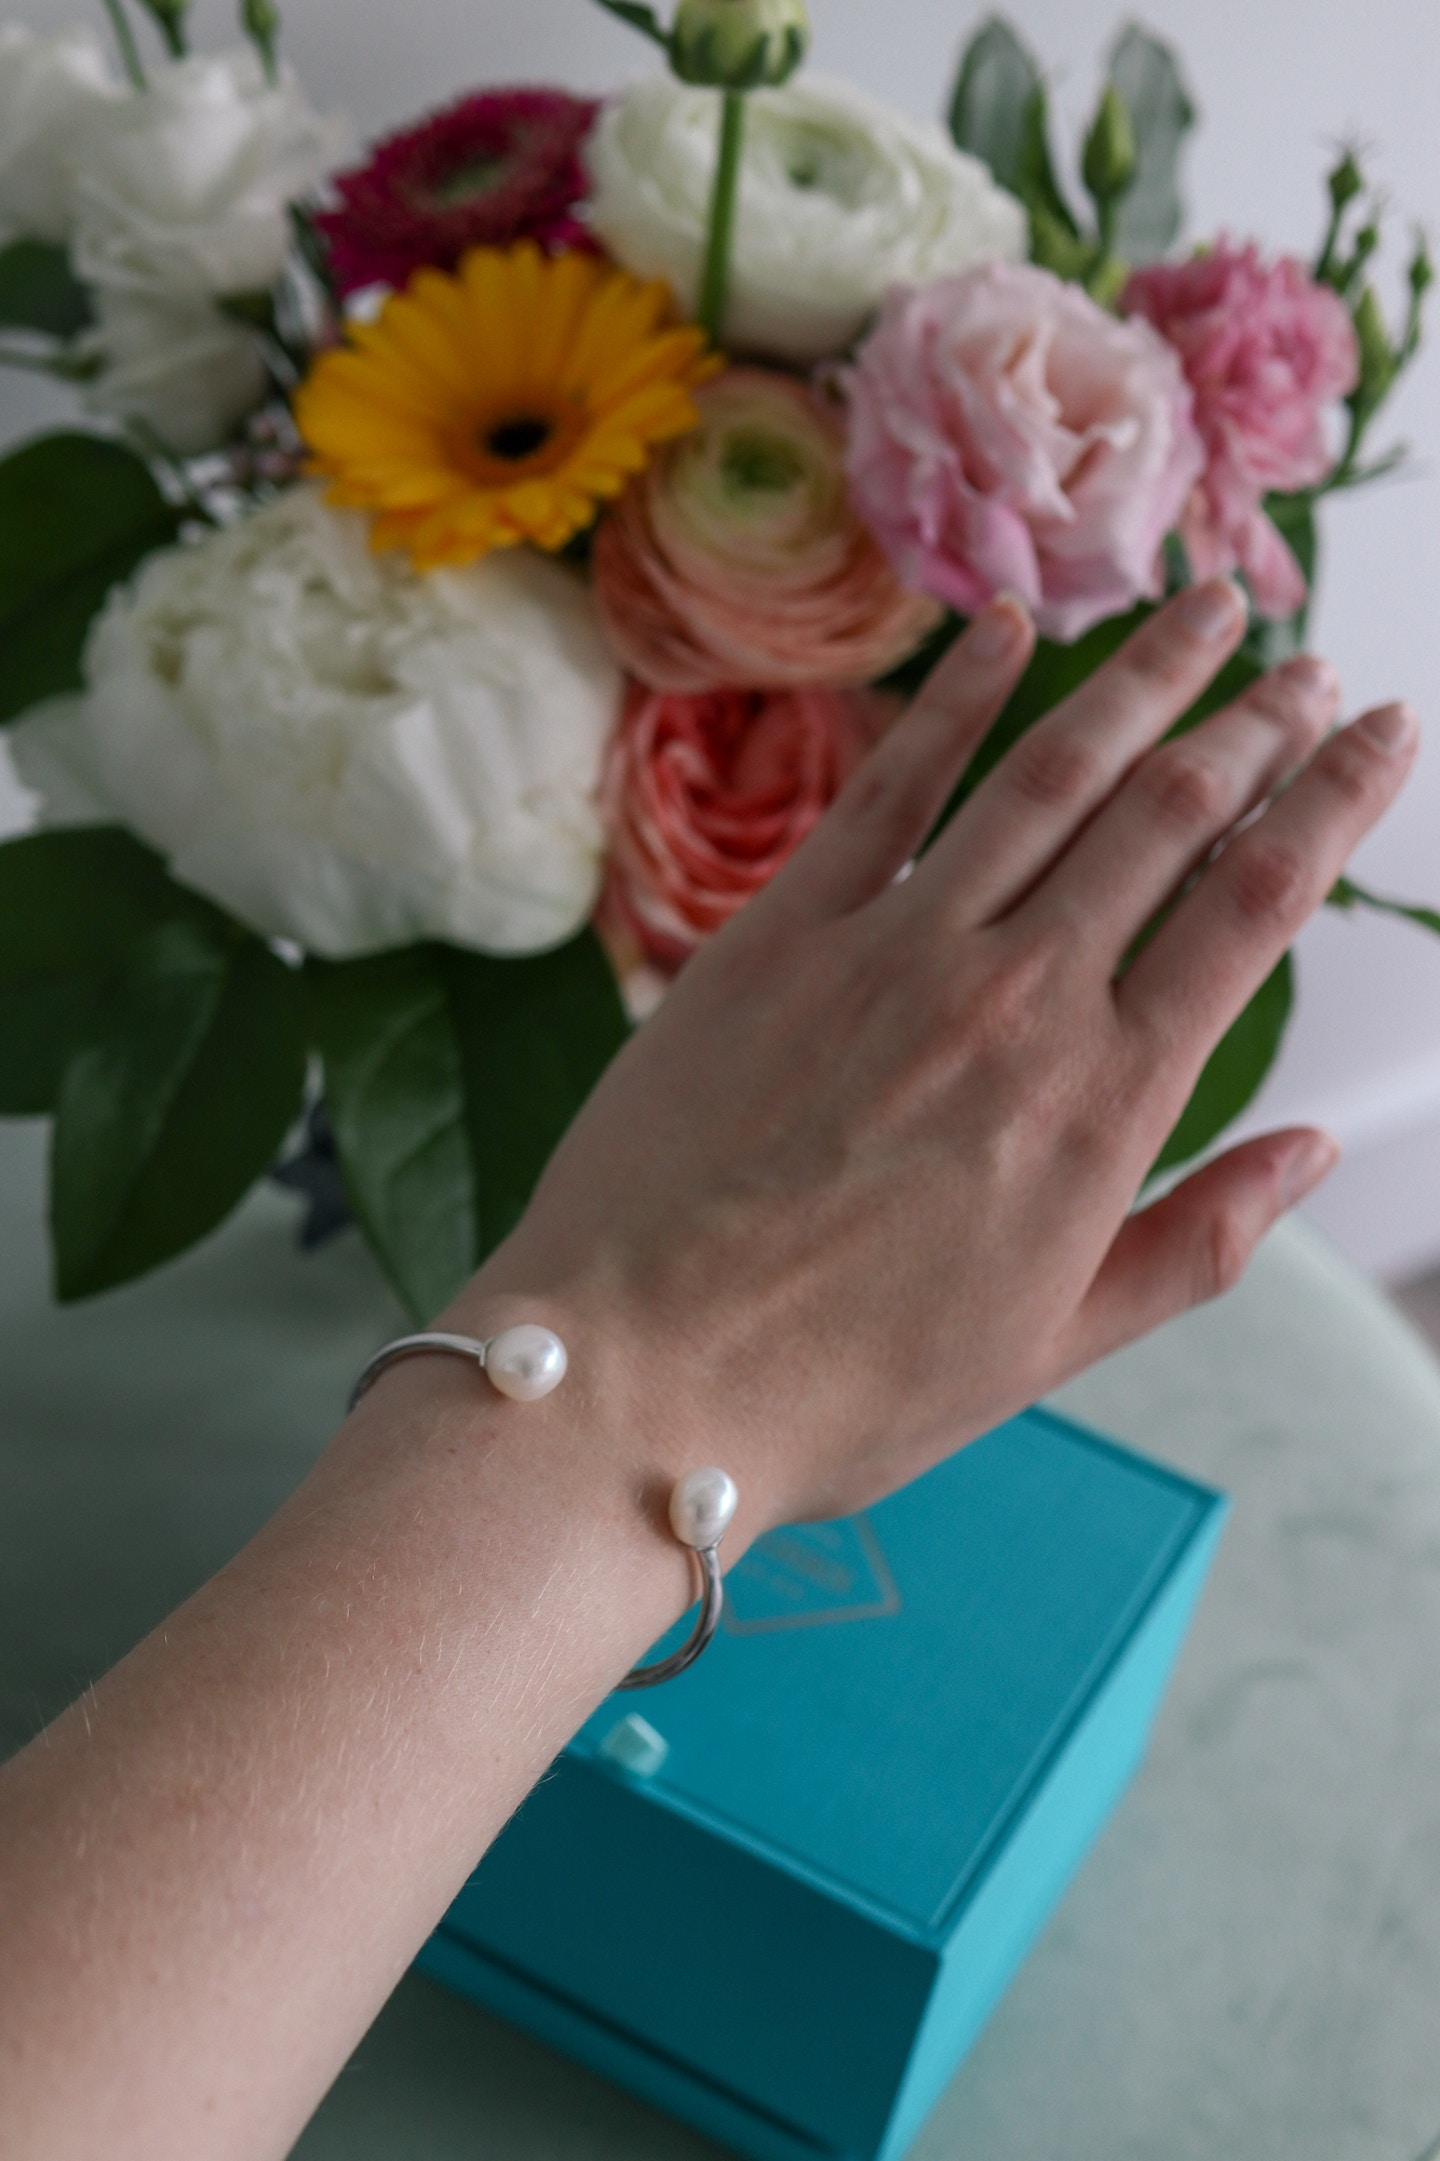 Birks Bee Chic Baroque Pearl silver bracelet - the perfect gift idea for the modern woman! Elegant, minimal but still makes a statement with freshwater pearls and silver.